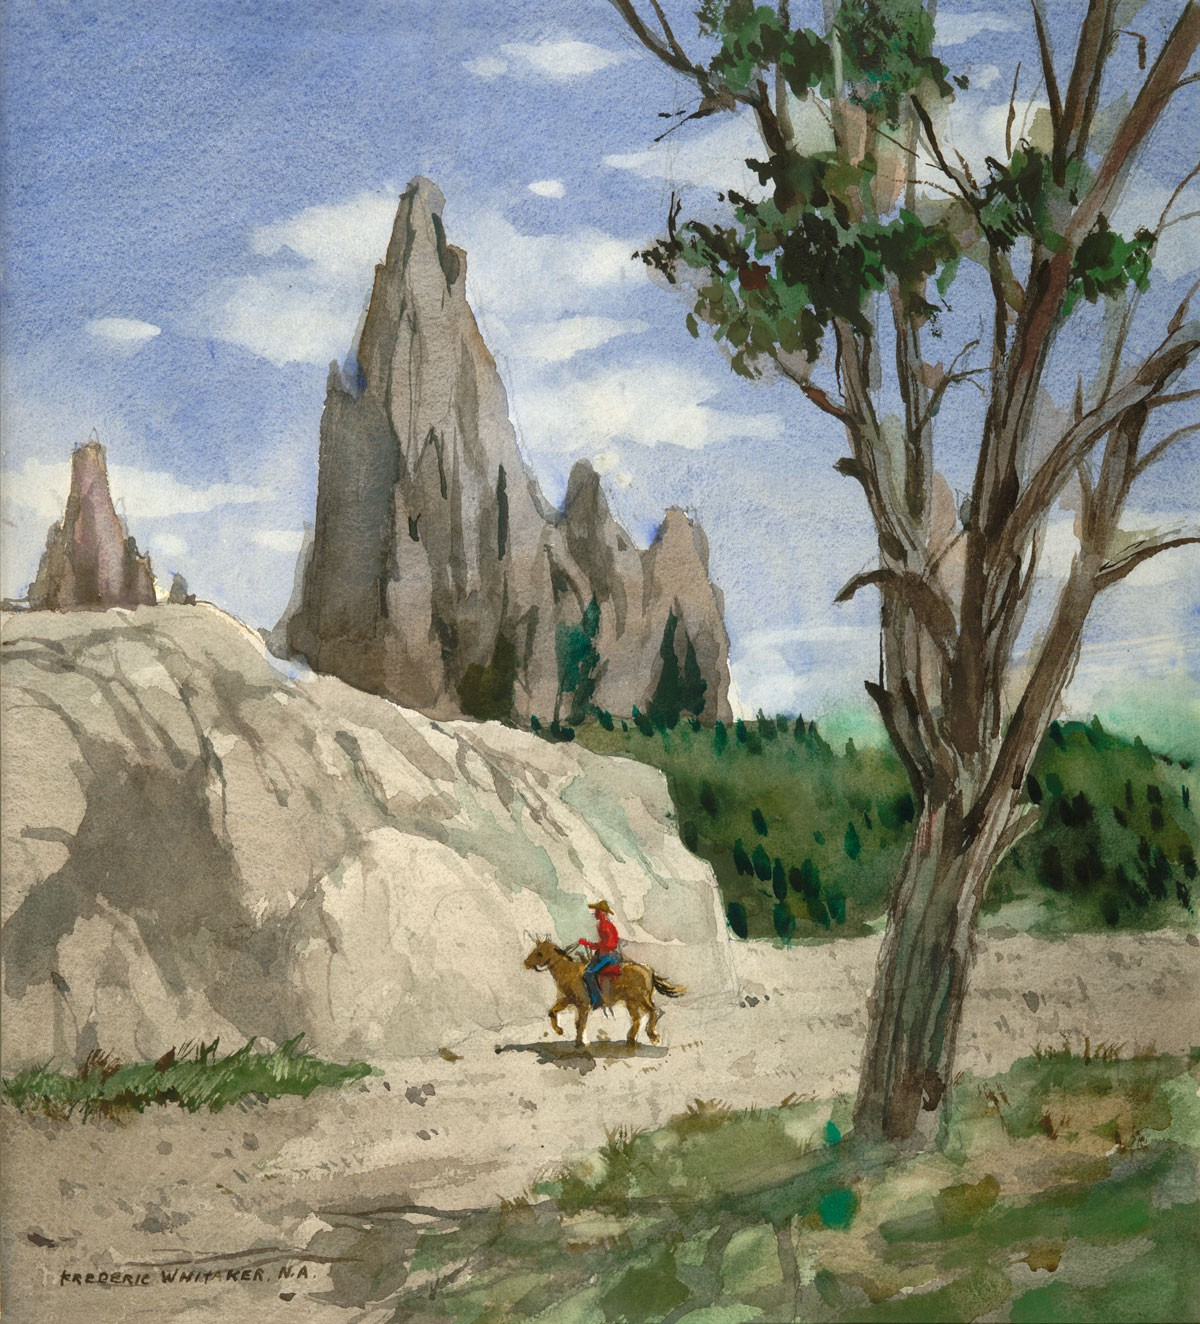 """""""Garden of the Gods No 7"""" 1975 © Frederic Whitaker N.A.  22x24.5 inches Watercolor"""